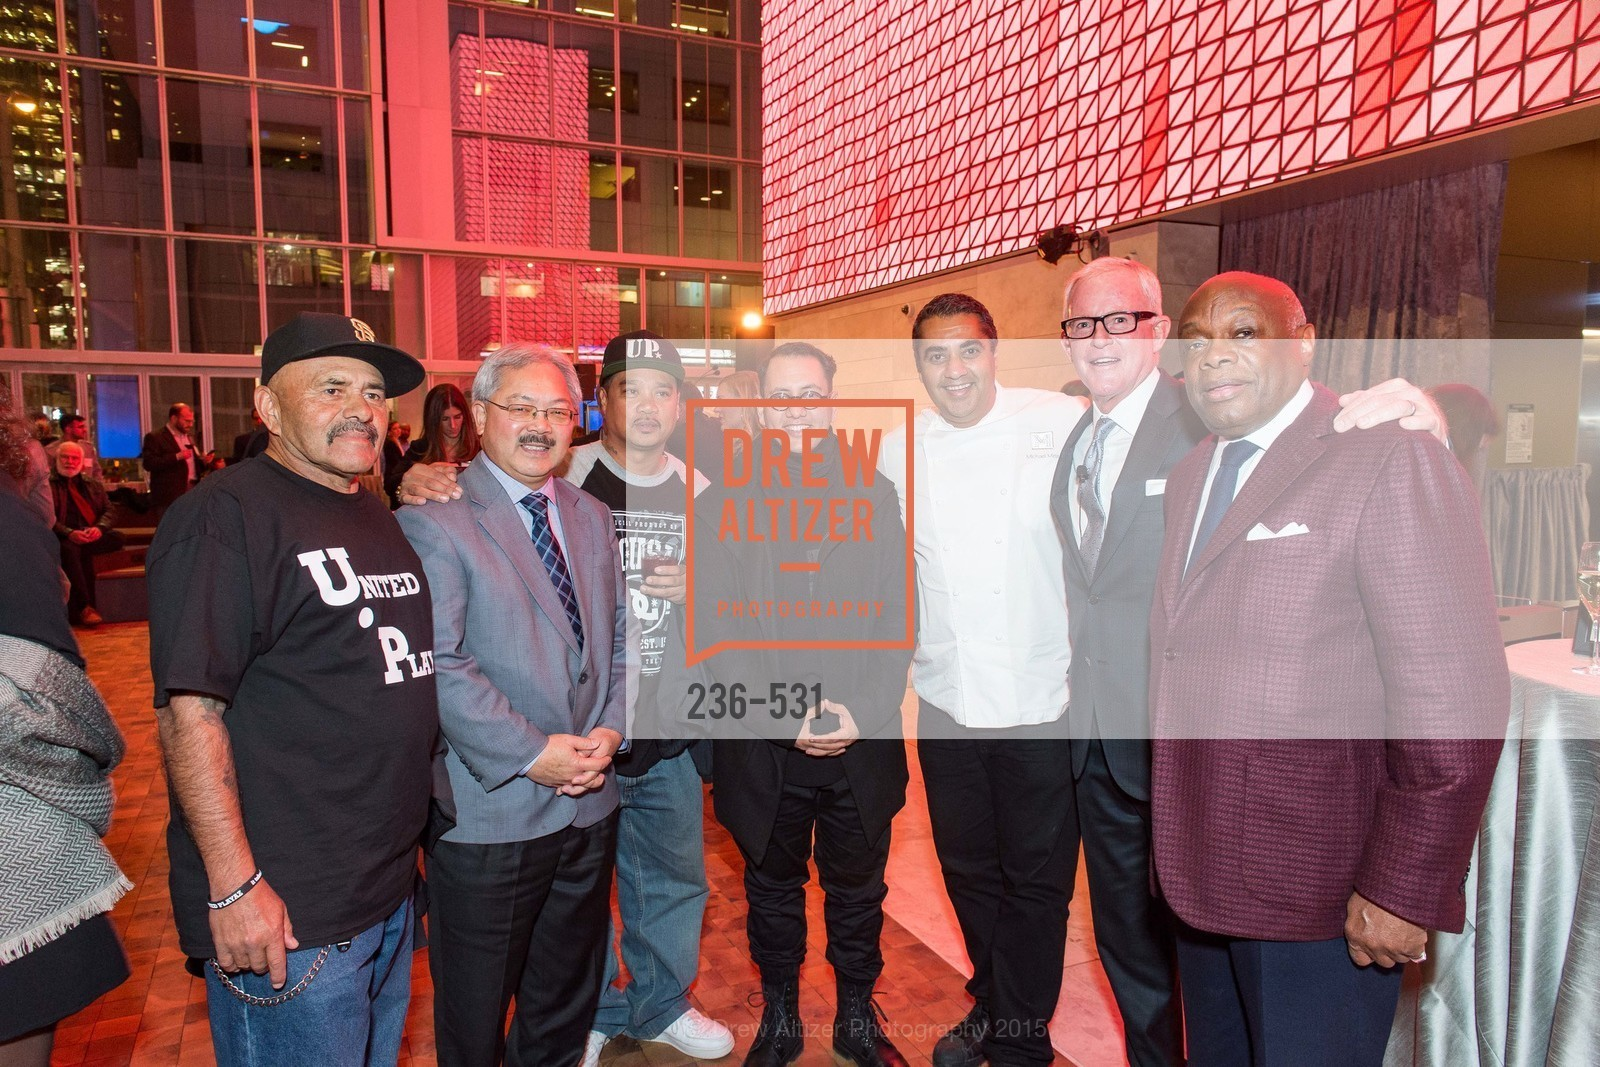 Ed Lee, Refik Anadol, Michael Mina, John Kilroy, Willie Brown, Kilroy Unveiling Presents Virtual Depictions: San Francisco by Refik Anadol, 350 Mission Street. 350 Mission Street, November 16th, 2015,Drew Altizer, Drew Altizer Photography, full-service event agency, private events, San Francisco photographer, photographer California